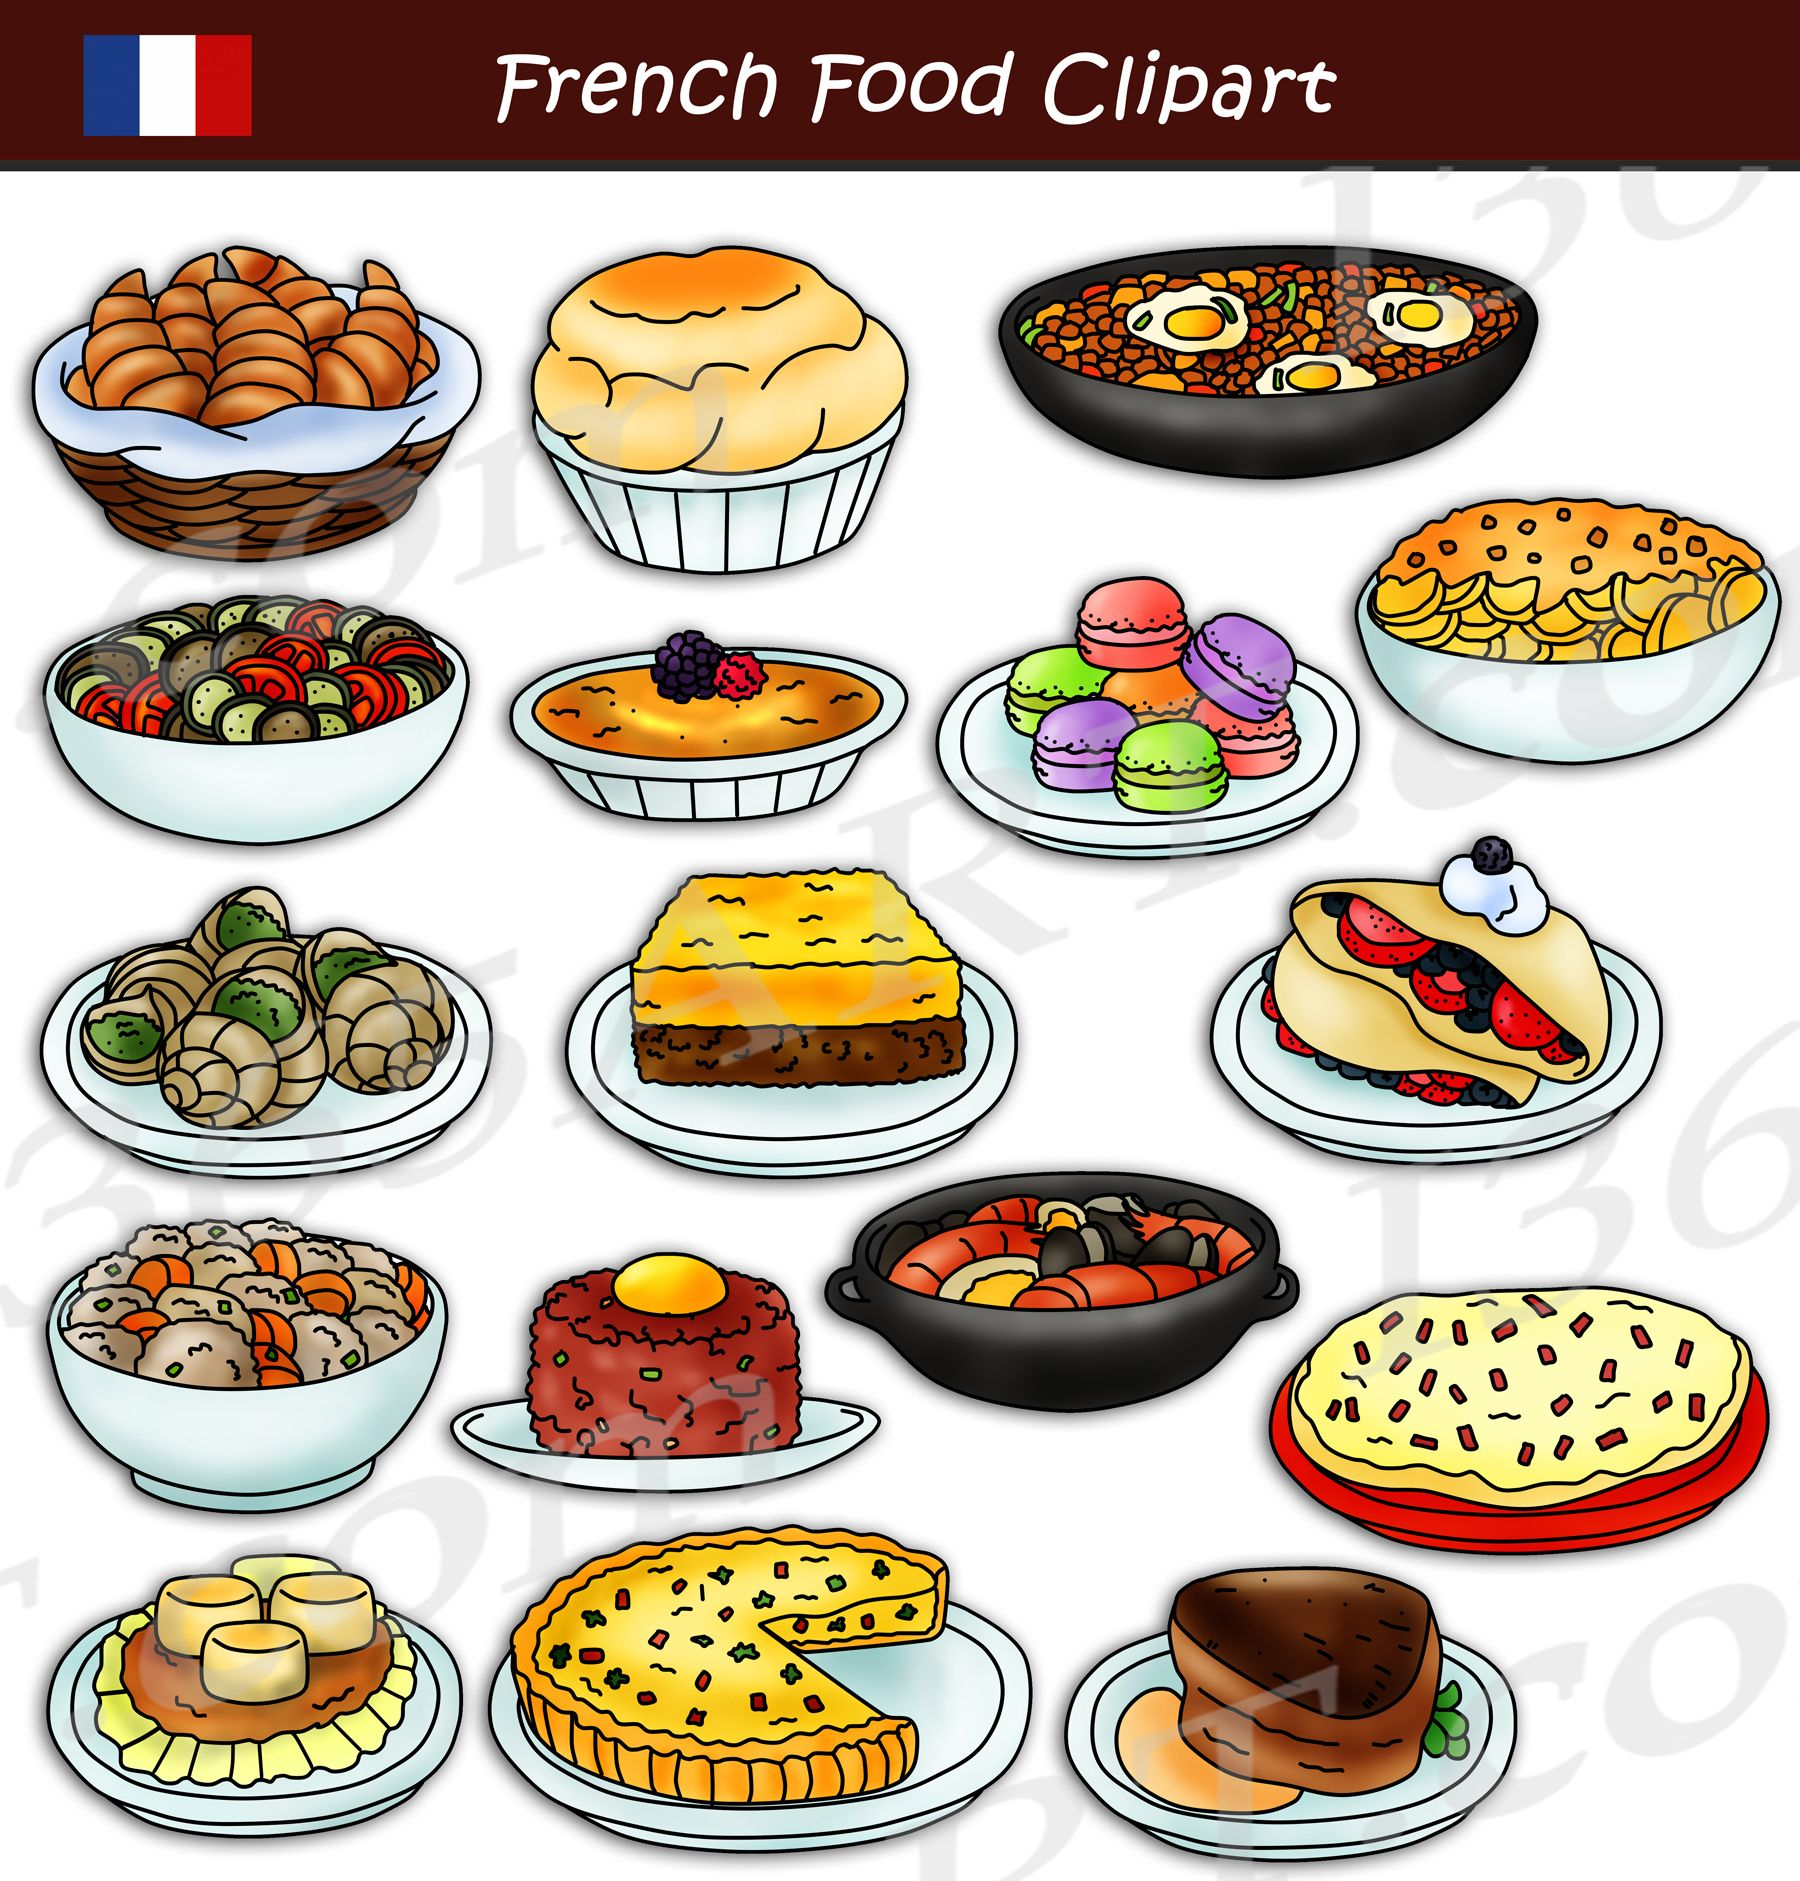 Best French Food Snack Ideas